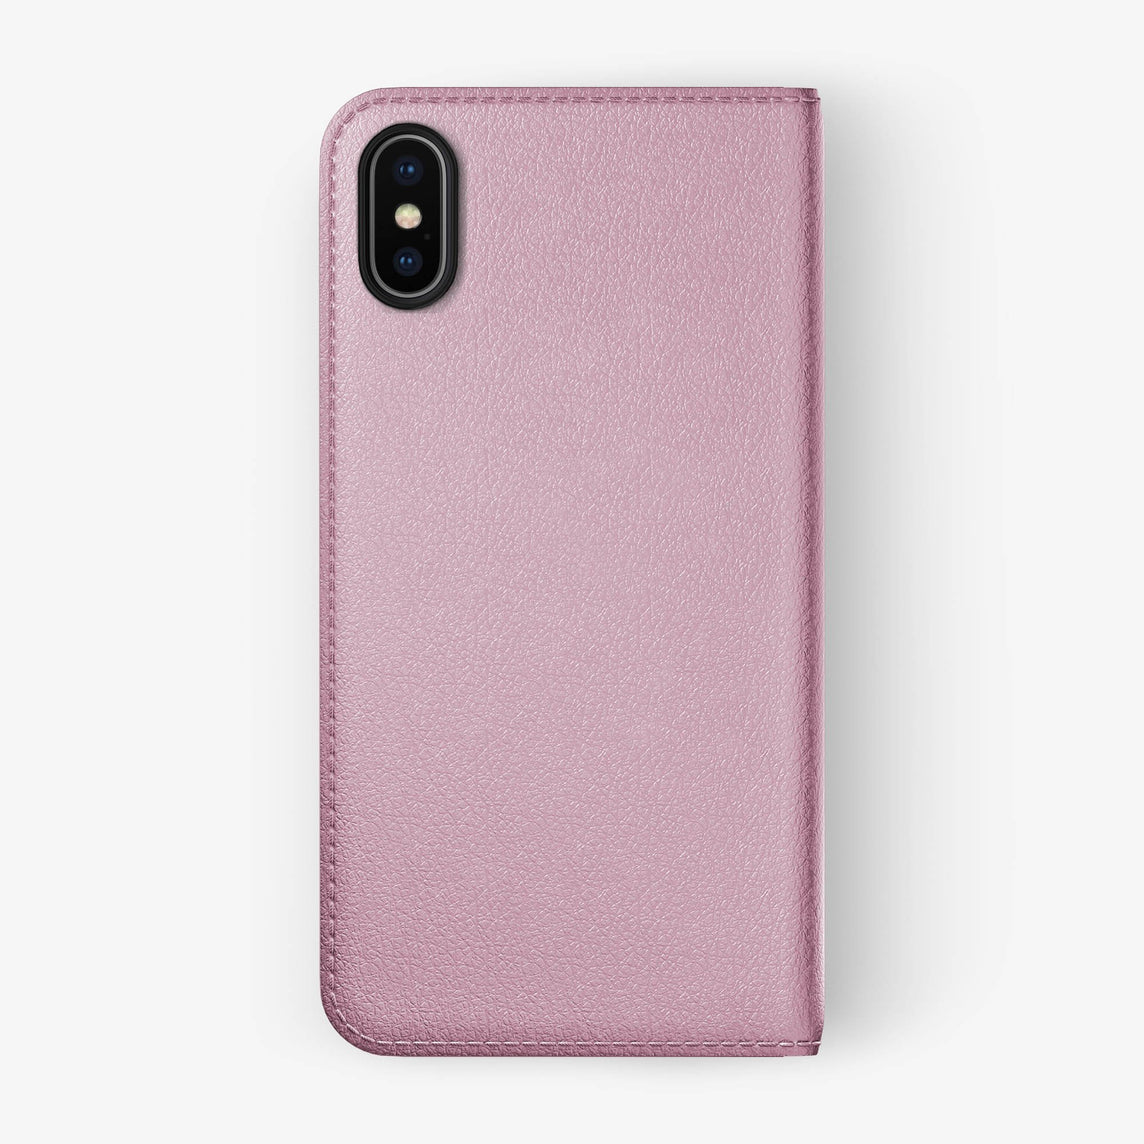 Pink Calfskin iPhone Folio Case for iPhone X finishing black - Hadoro Luxury Cases - img5